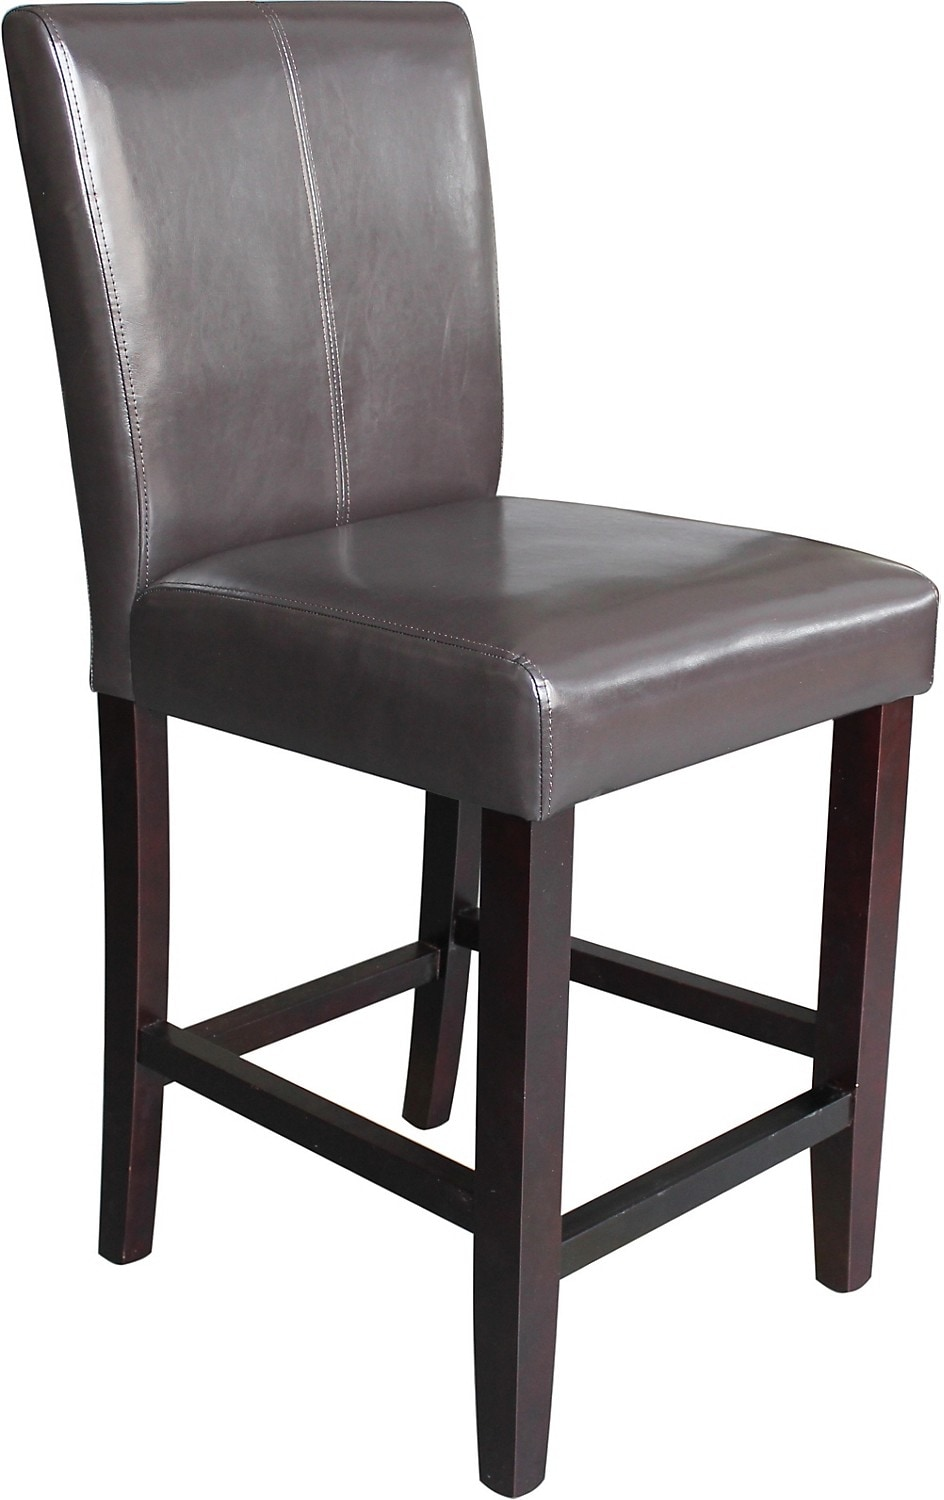 Dining Room Furniture - Brown Counter-Height Dining Chair